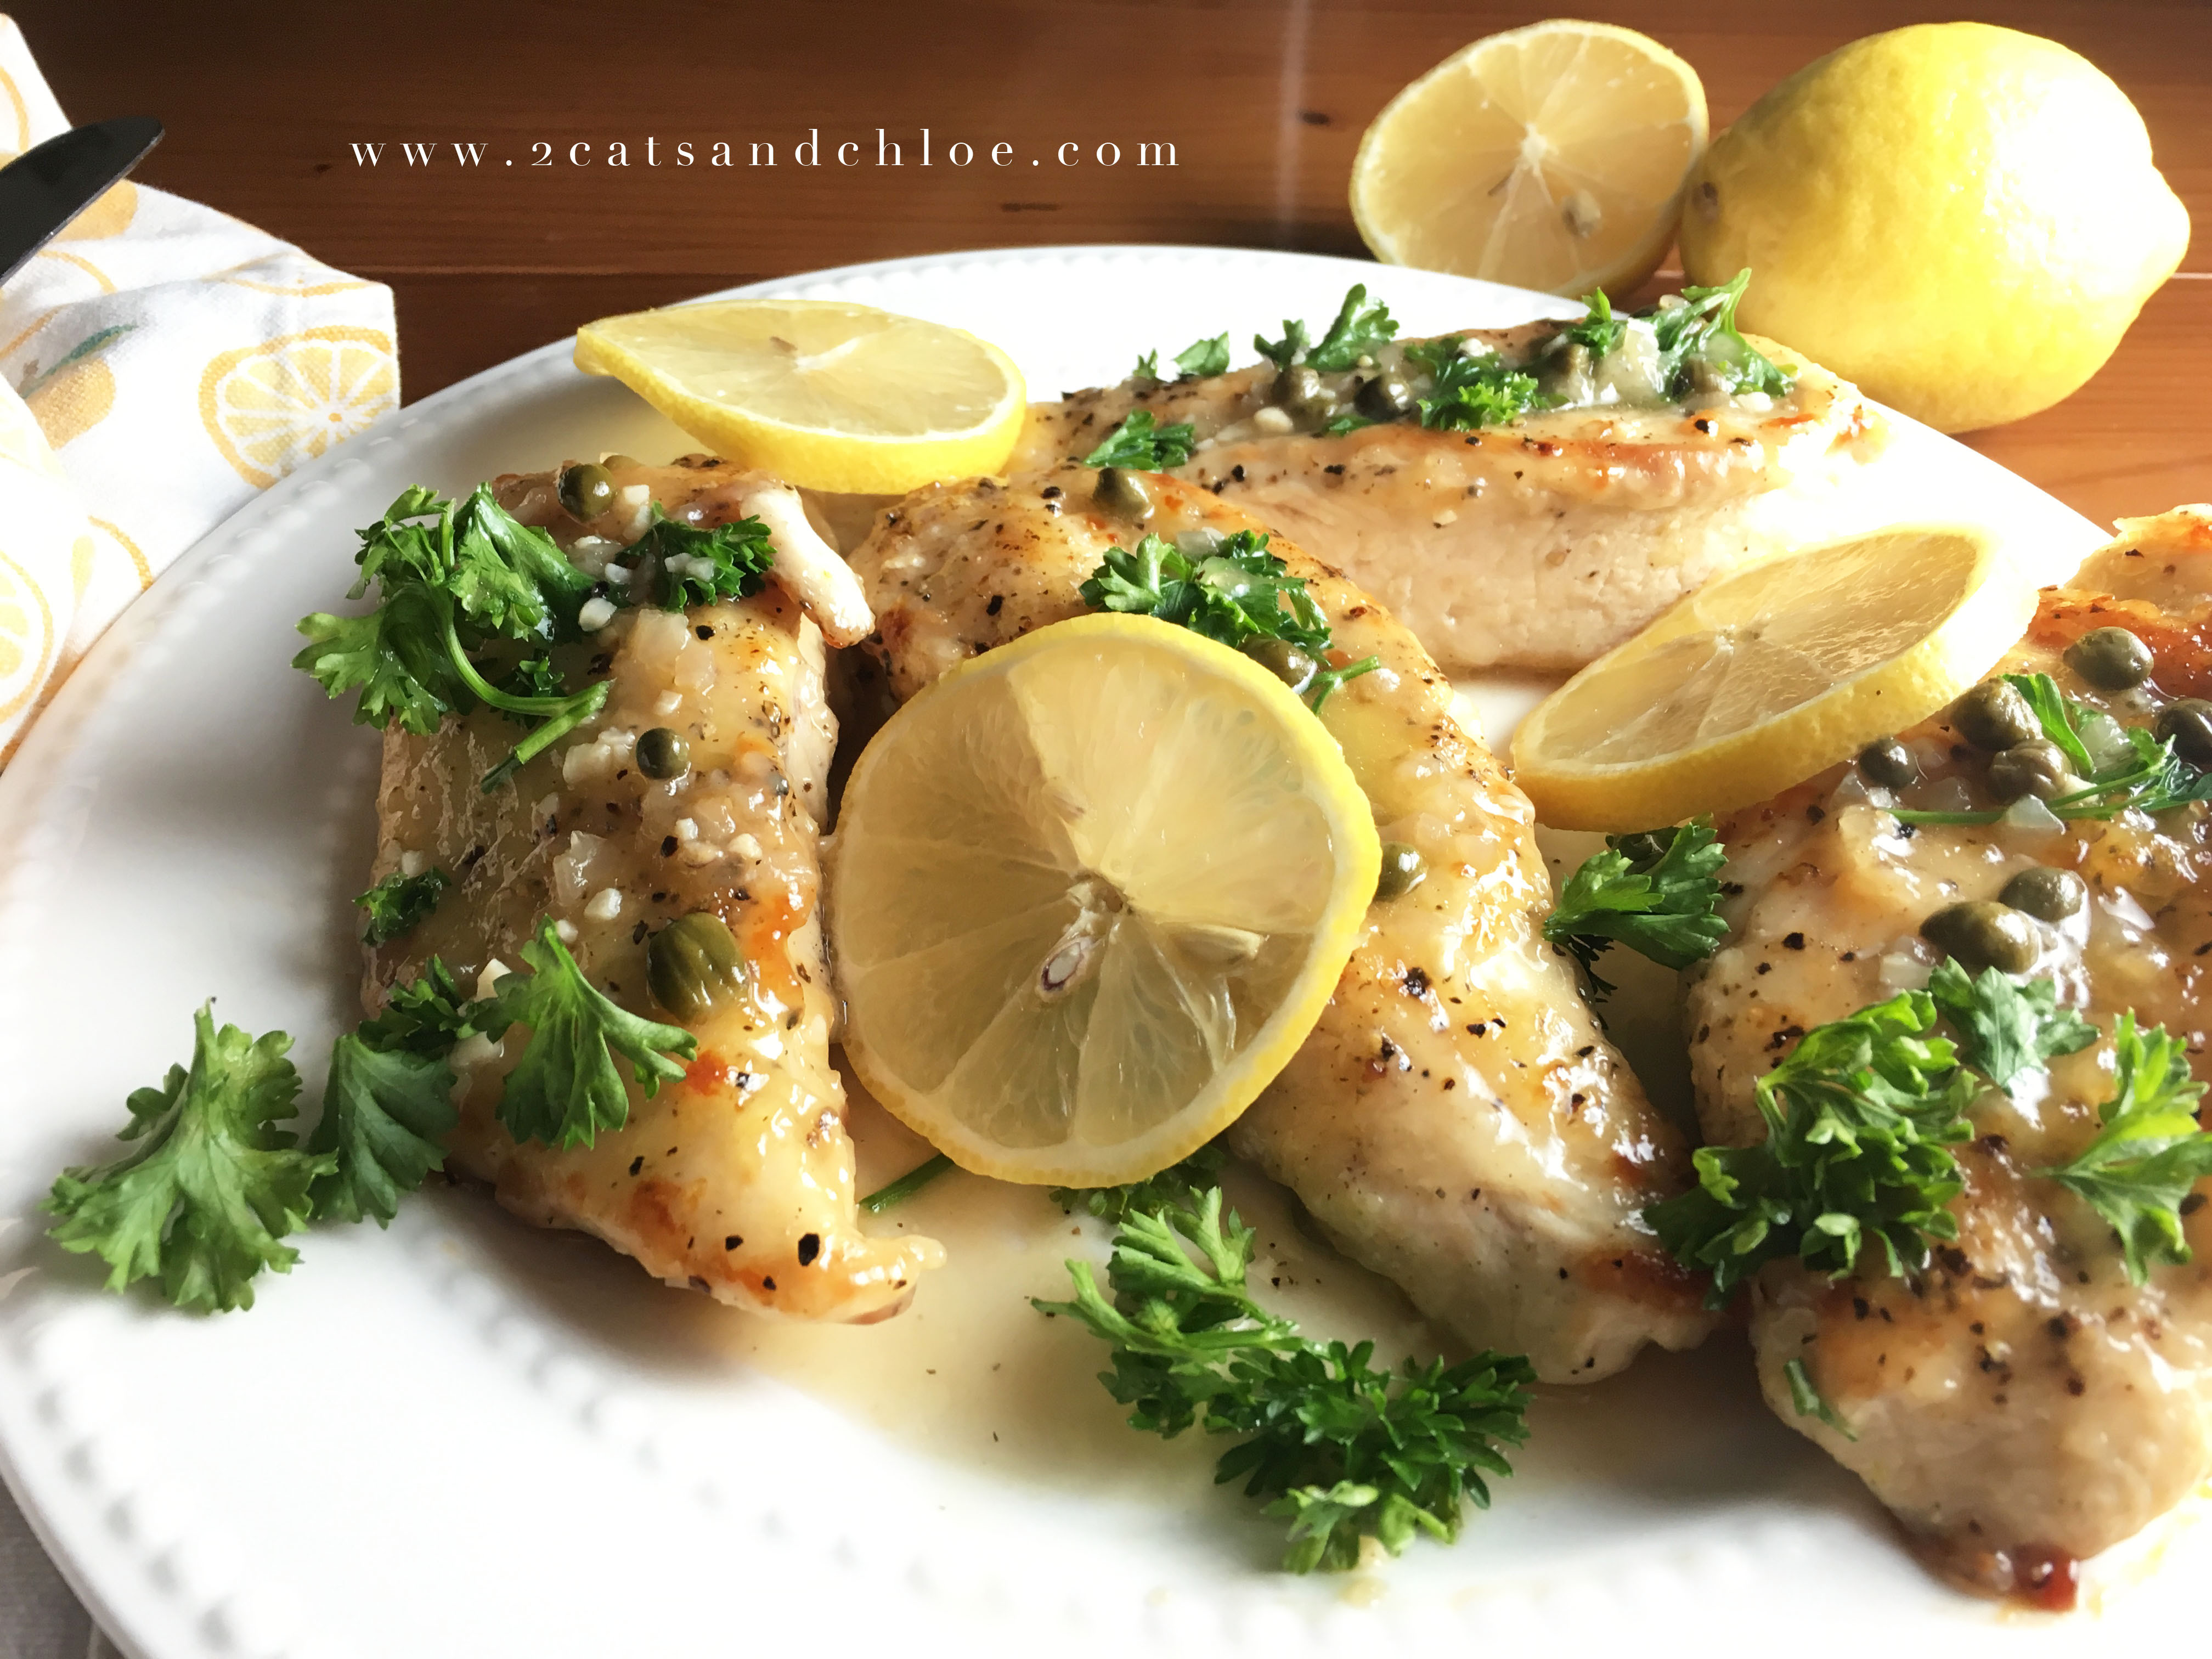 Whole30 Chicken Recipes  Paleo Whole30 Lemon Chicken Dinner 2 Cats and Chloe